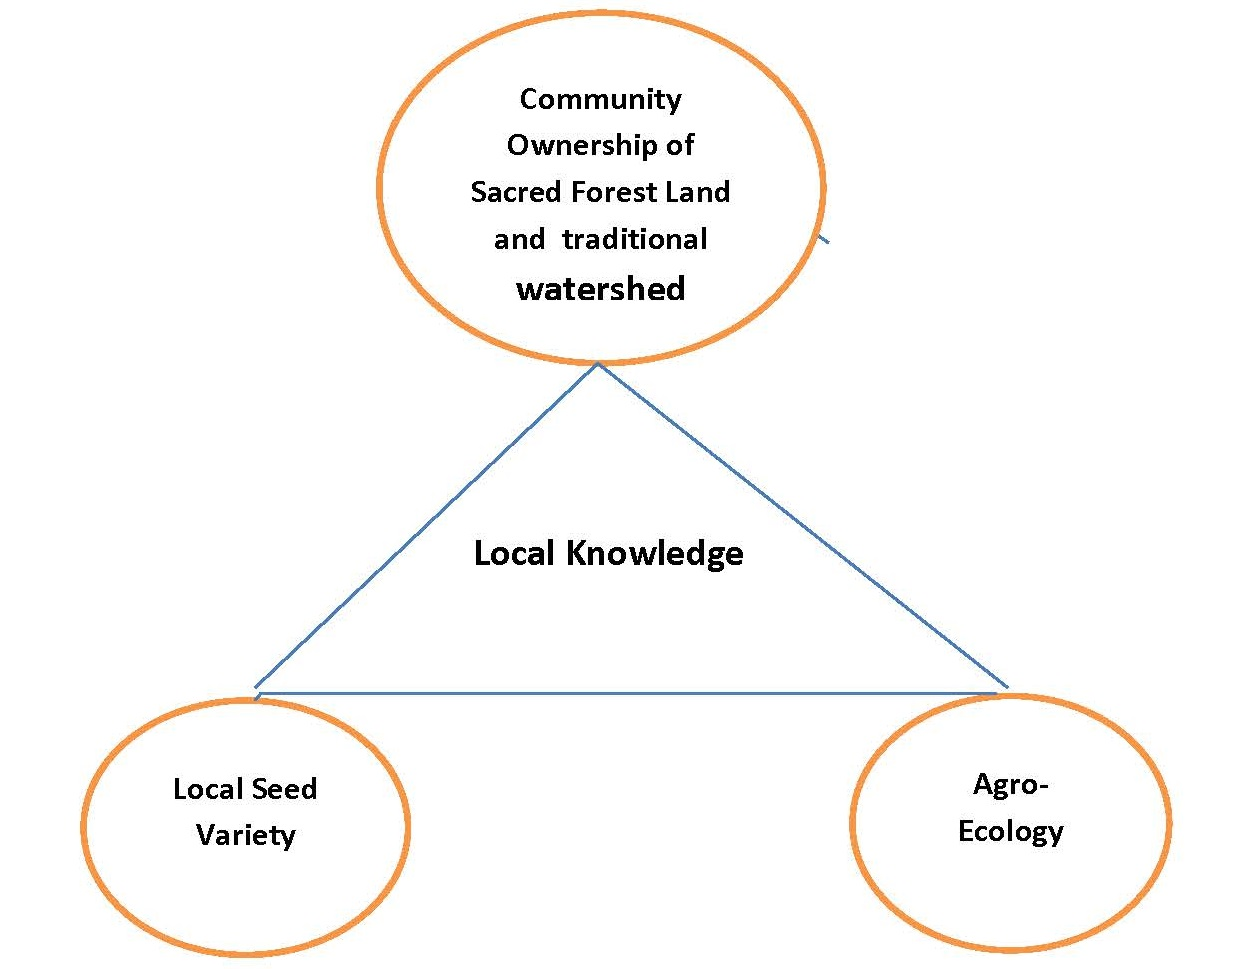 Local Knowledge is a cross cuting Inter-dependent between Community Ownership of Sacred Forest, Local Seed Variety and Agroecology